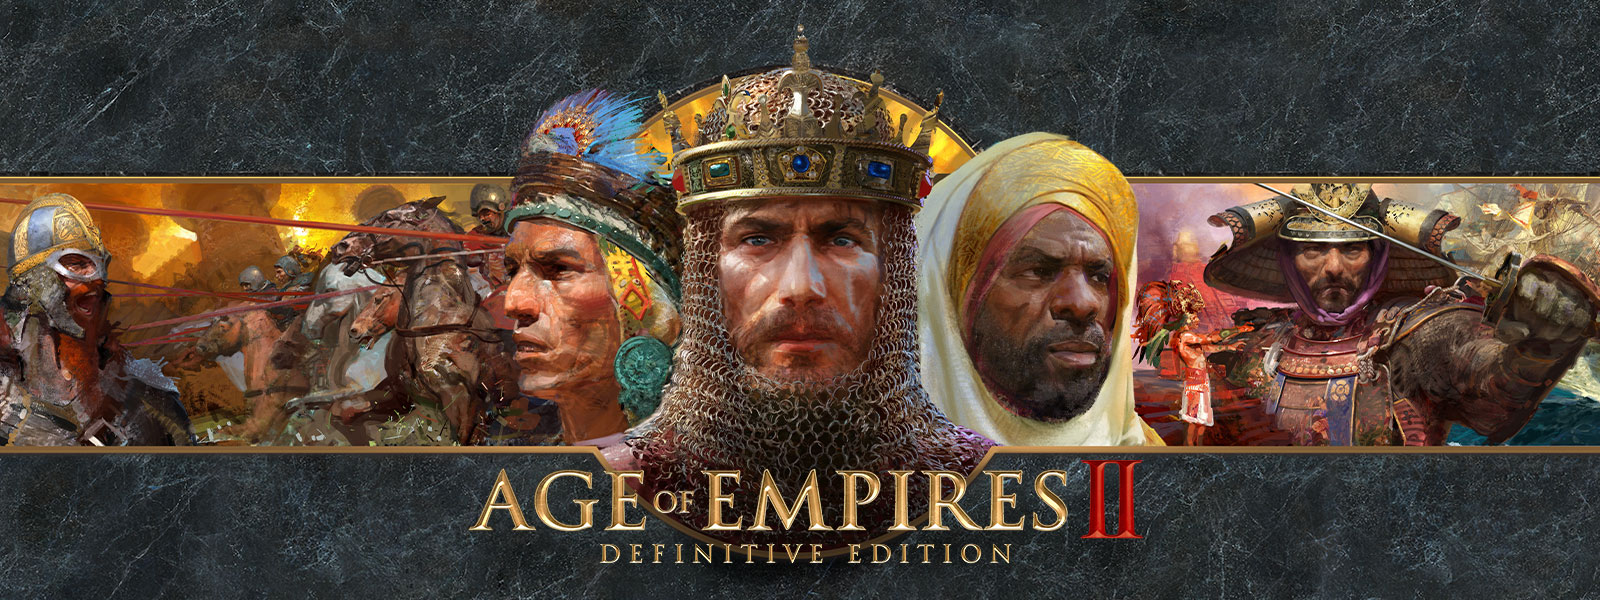 Age of Empires II: Definitive Edition logo on a grey slate background featuring war leaders and their armies